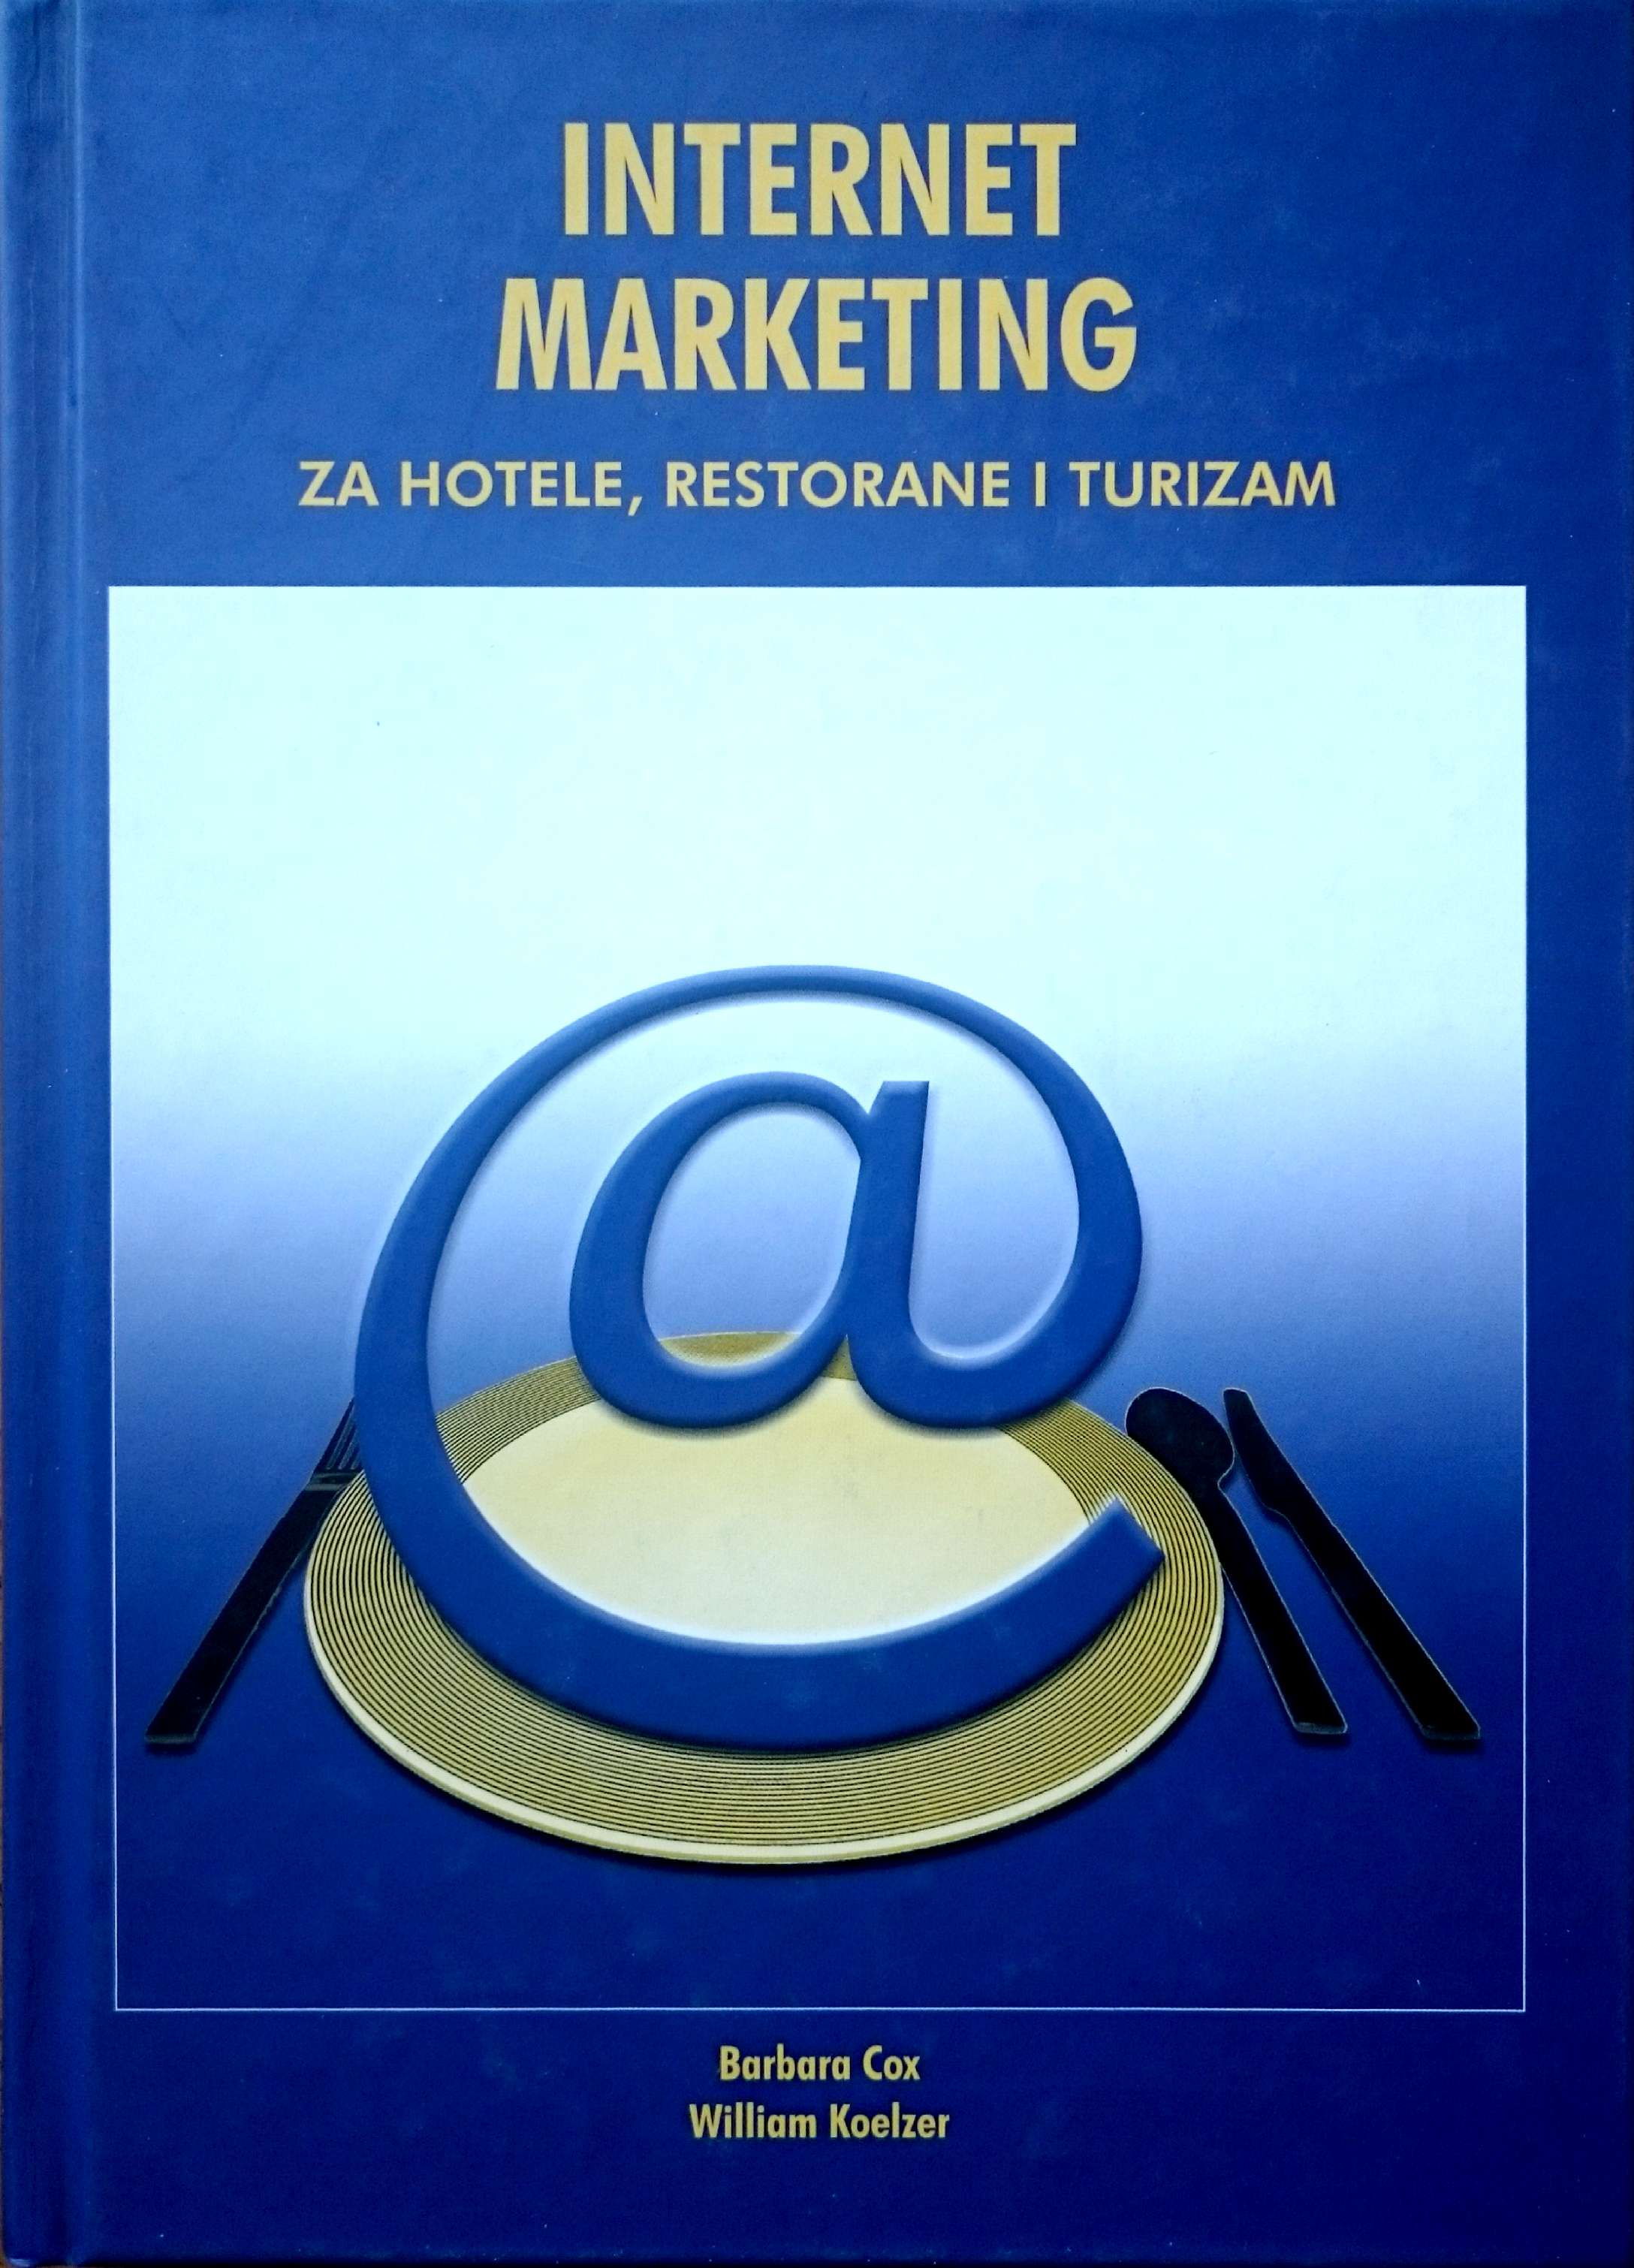 INTERNET MARKETING - Naruči svoju knjigu